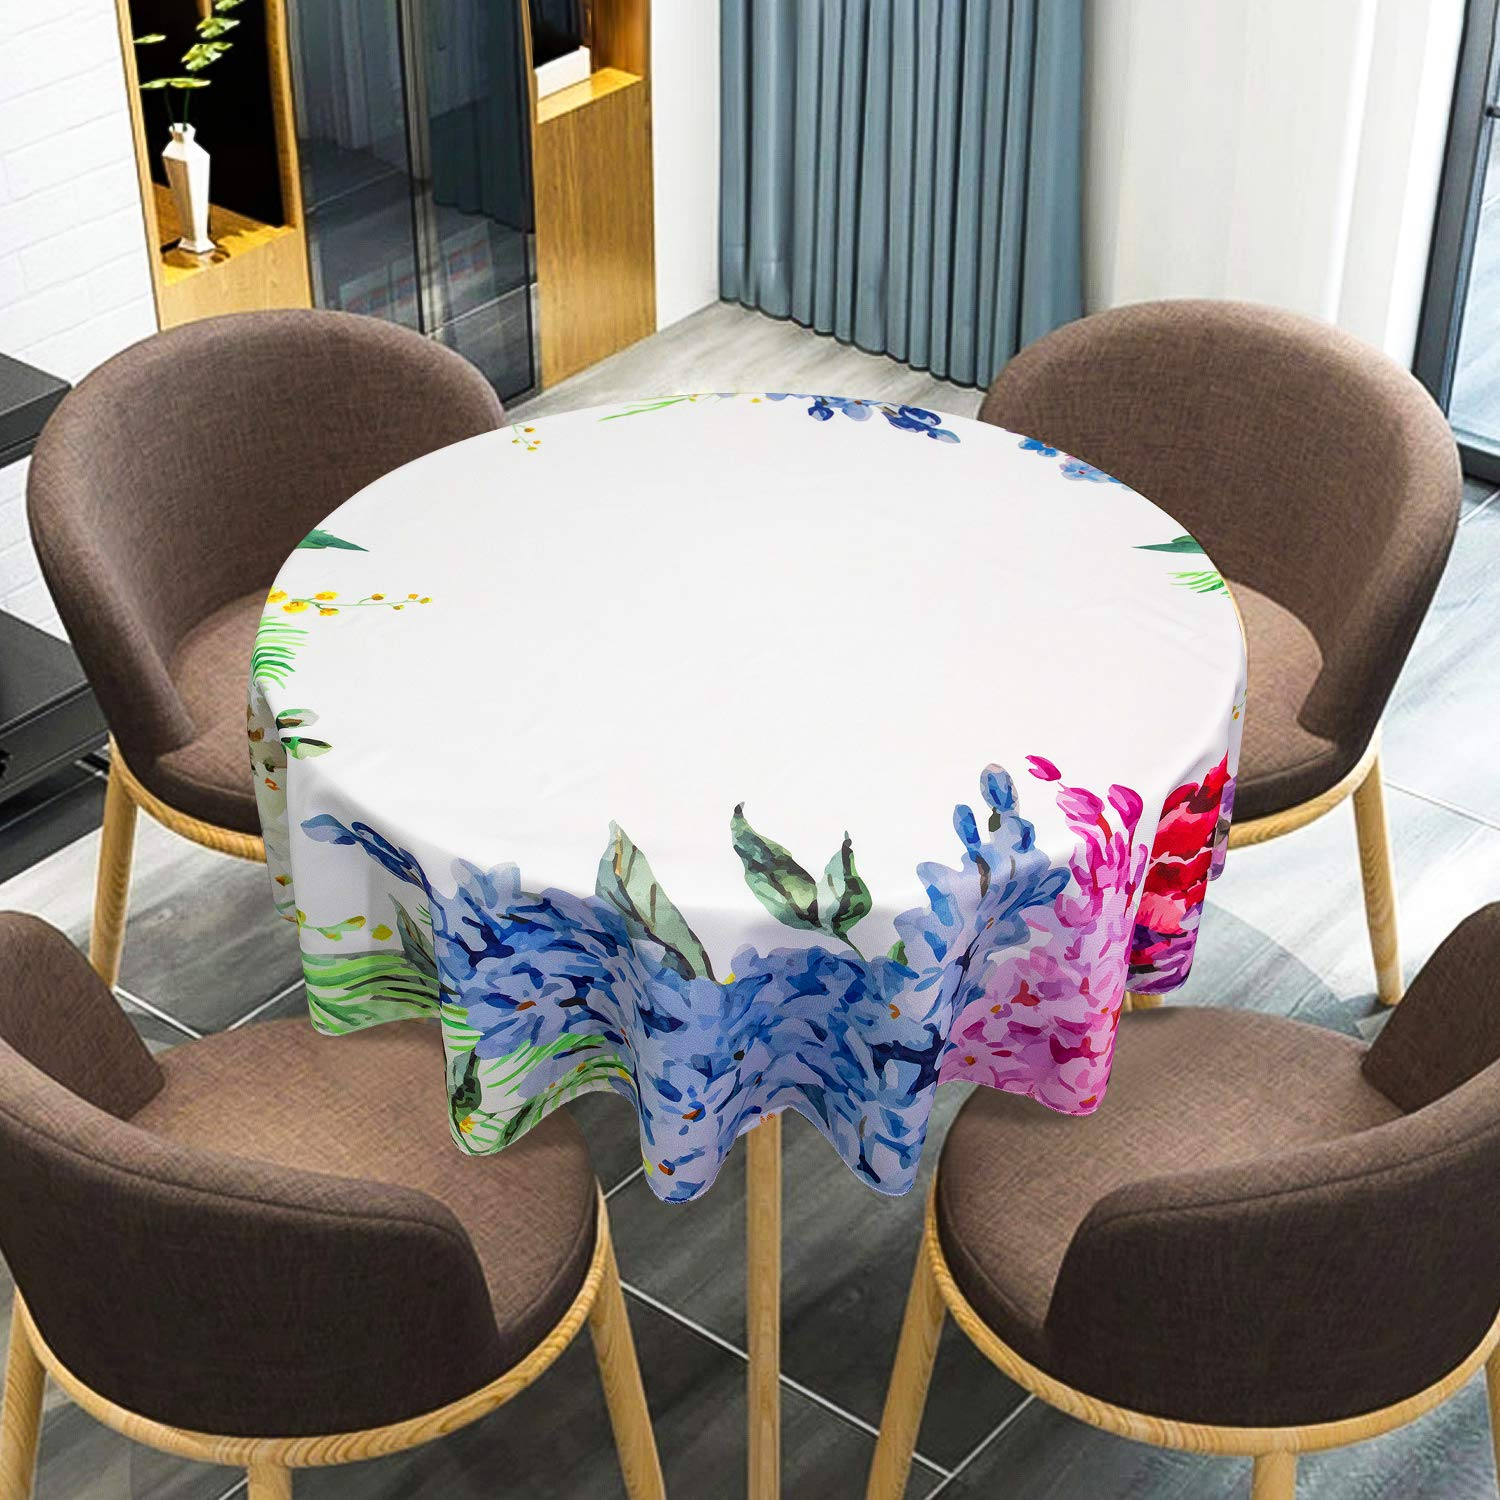 """VVA Round Tablecloth,Flower Springtime Fragrance Garland with Bright Bunch of Lilac Lavender Rose Peony Urban Watercolor Style for Holiday Family Dinners or Gatherings,Indoor Outdoor Events 60"""" Inch"""